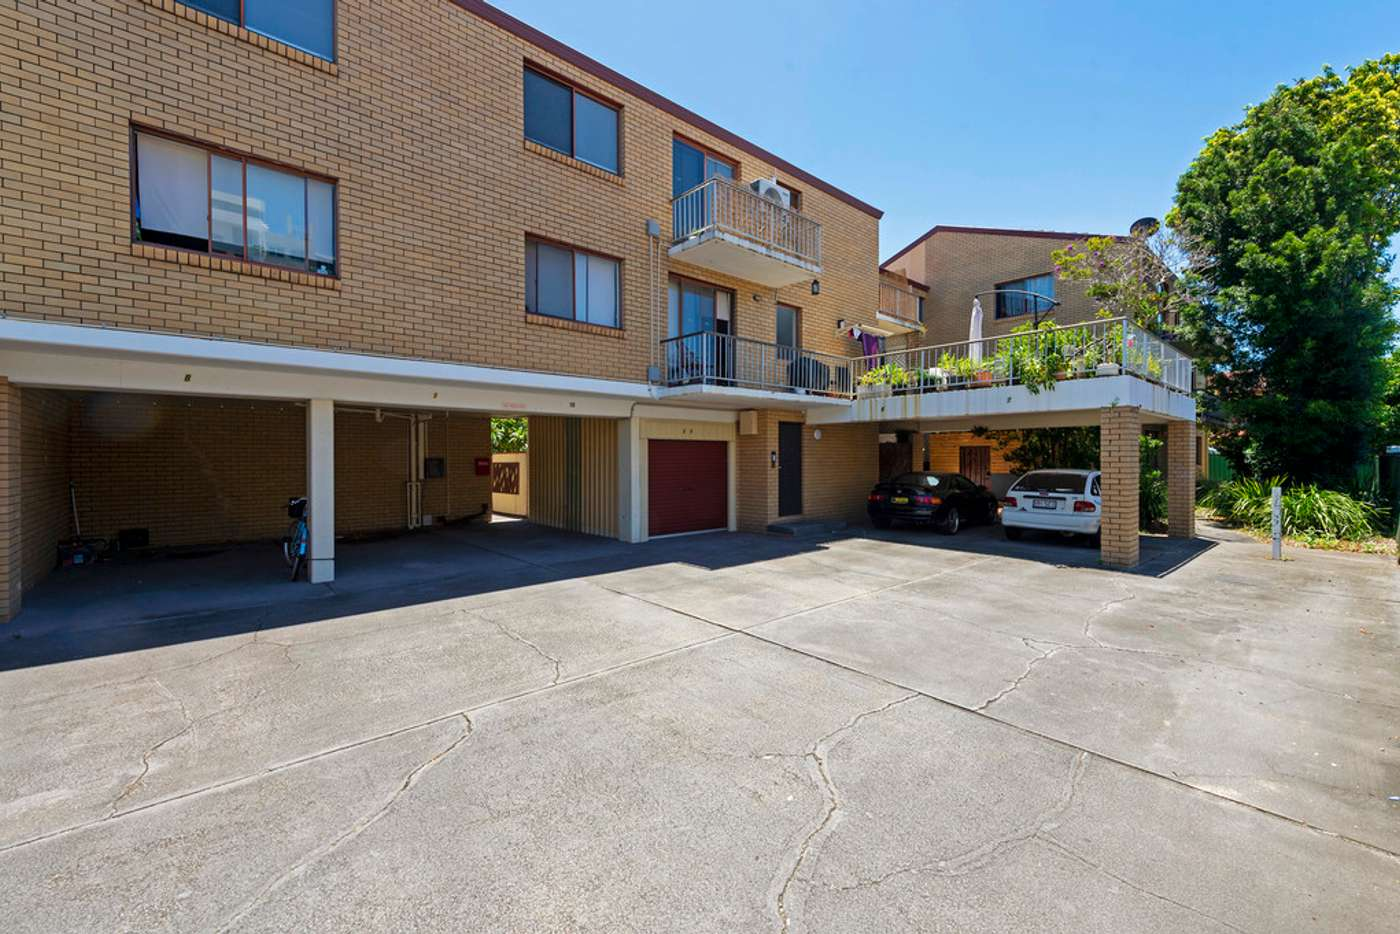 Main view of Homely unit listing, 10/25 Imperial Parade, Labrador QLD 4215